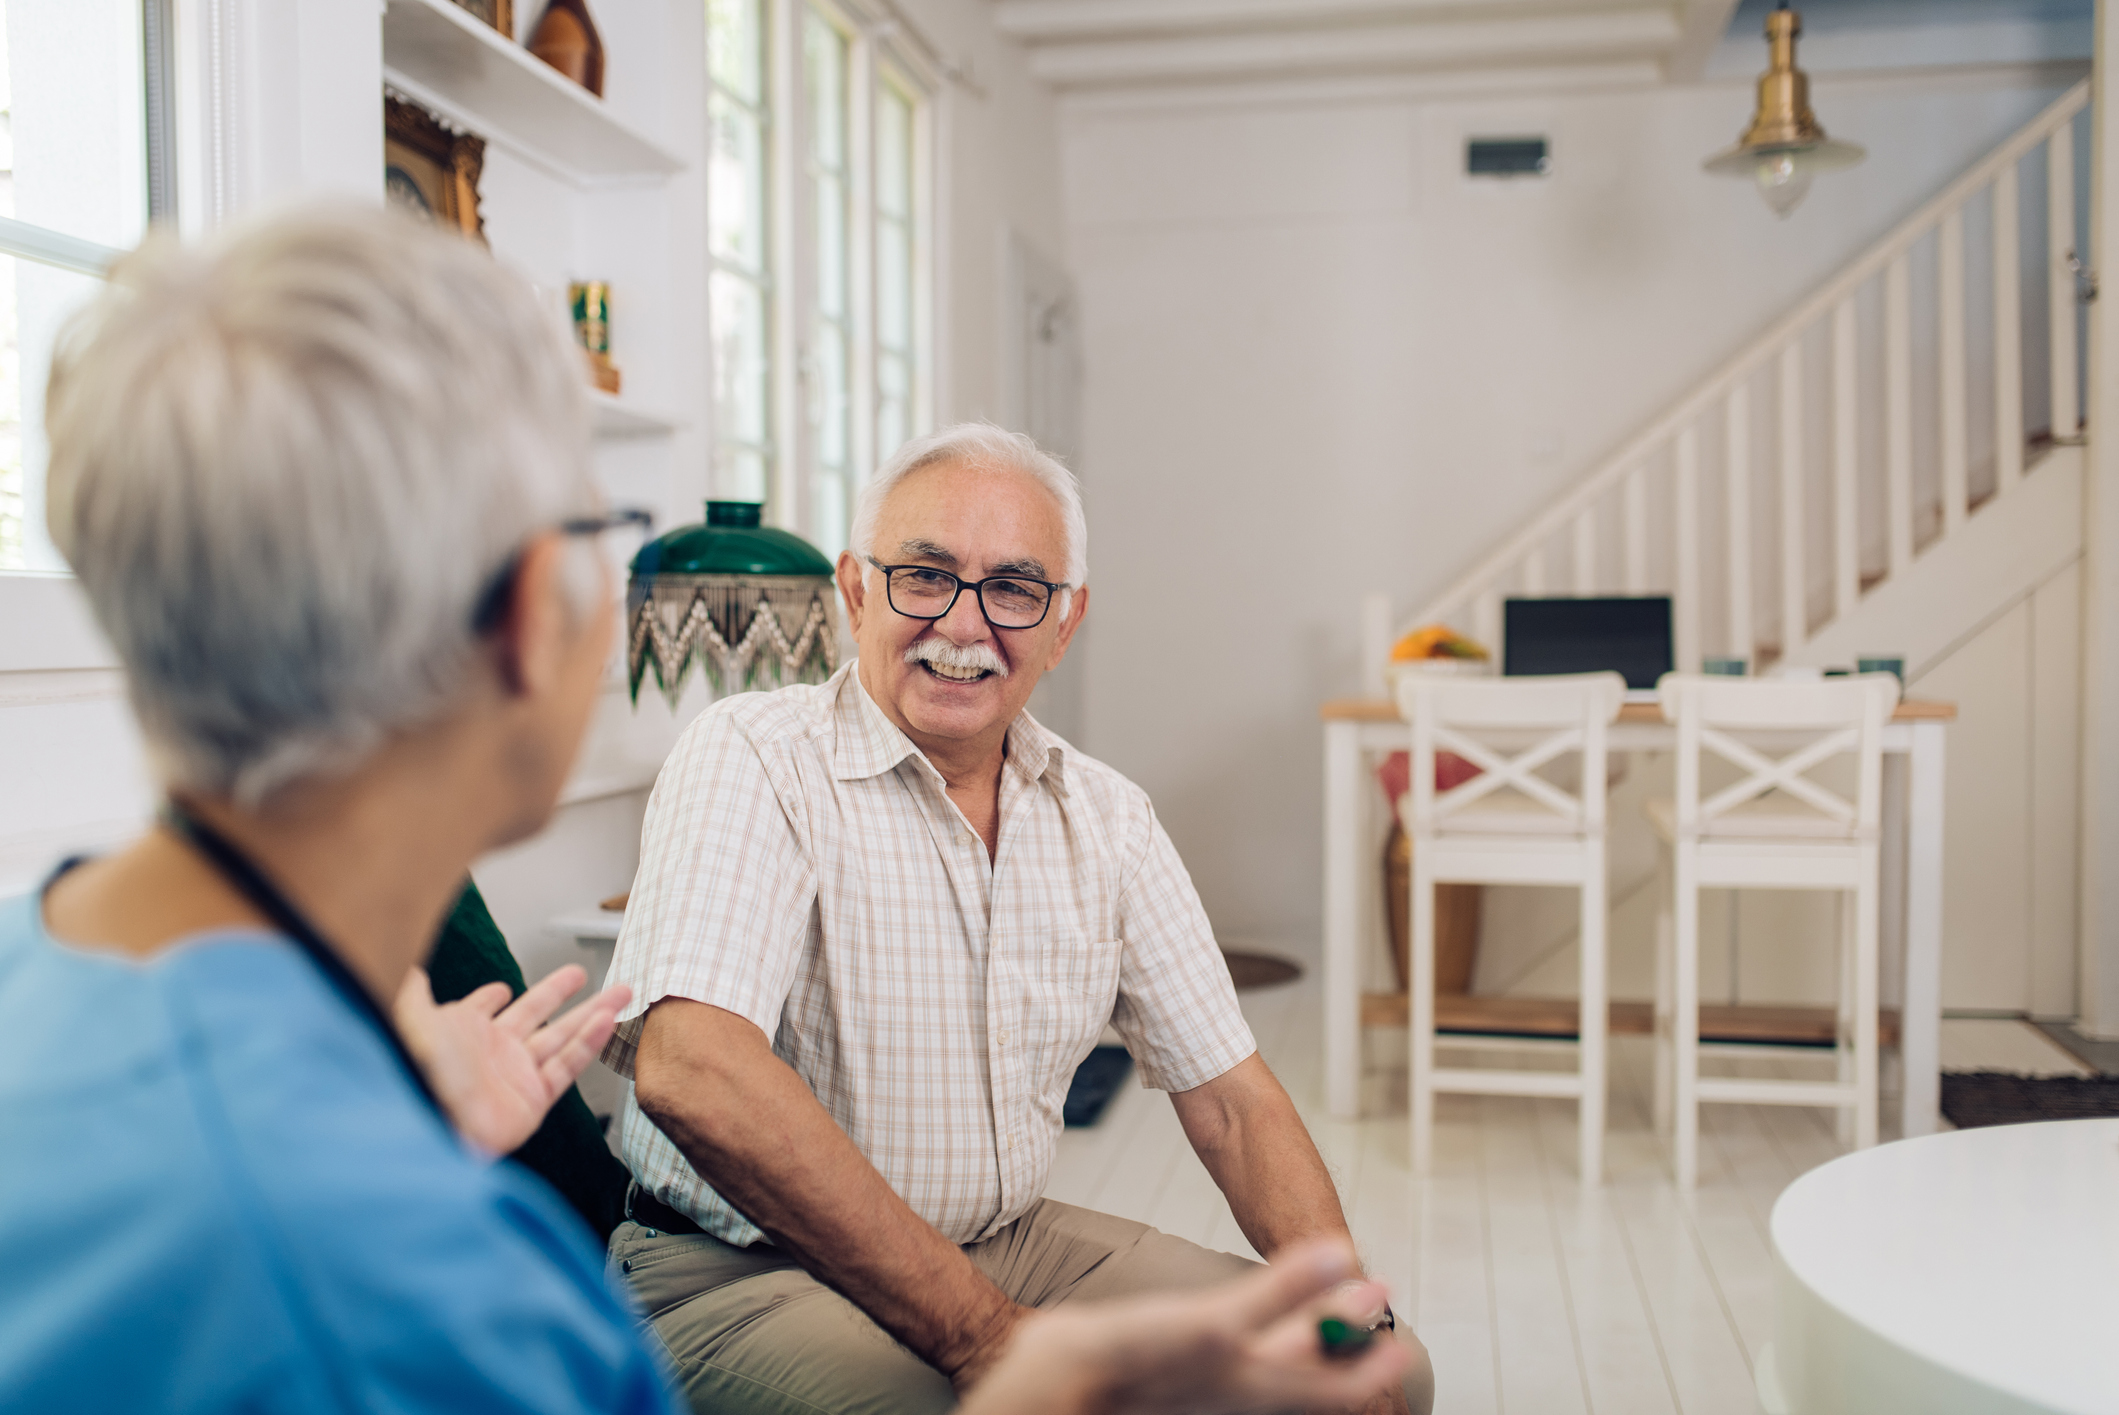 If you're caring for elderly parents, scheduling an in-home care consultation can help.